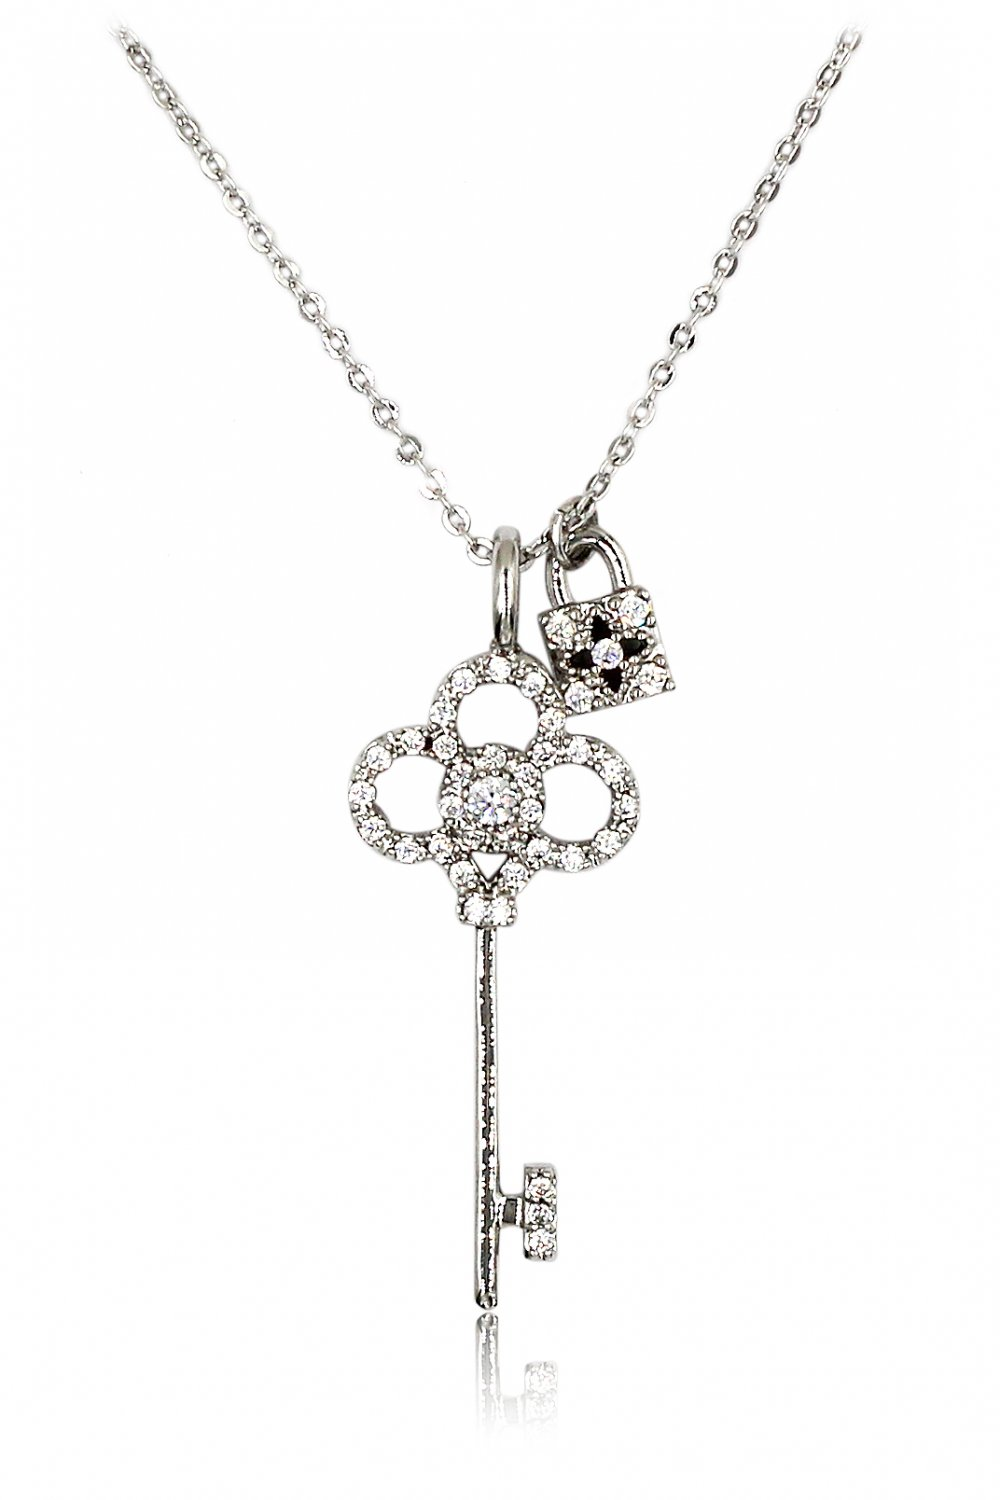 Delicate crystal key and lock silver necklace